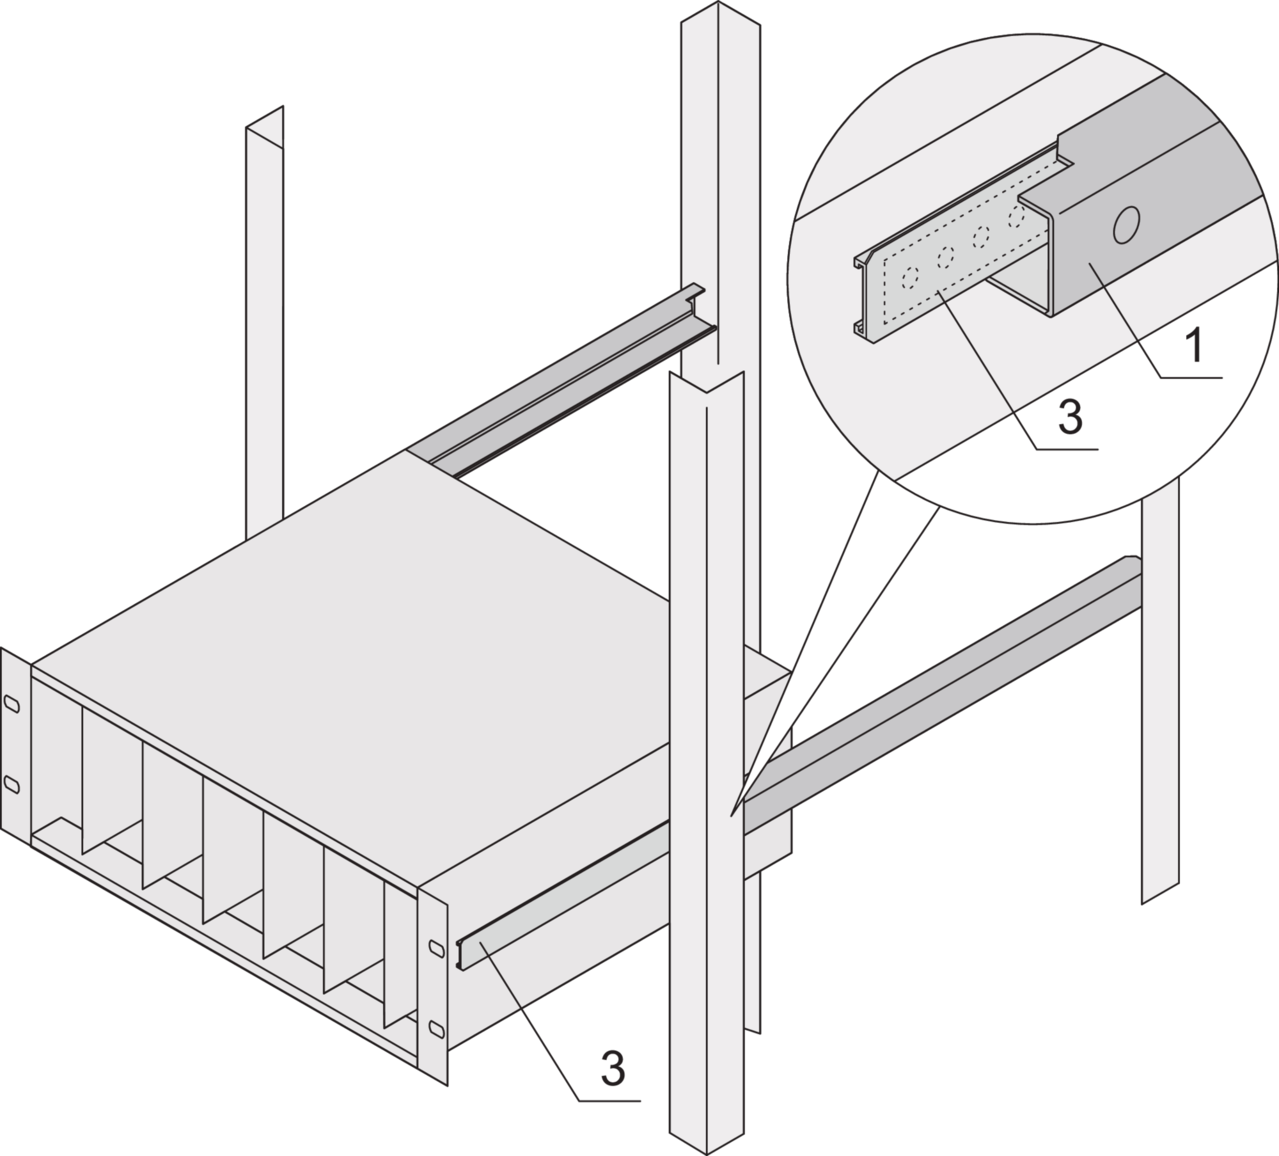 1: Telescopic slide;  2: Adaptor rail